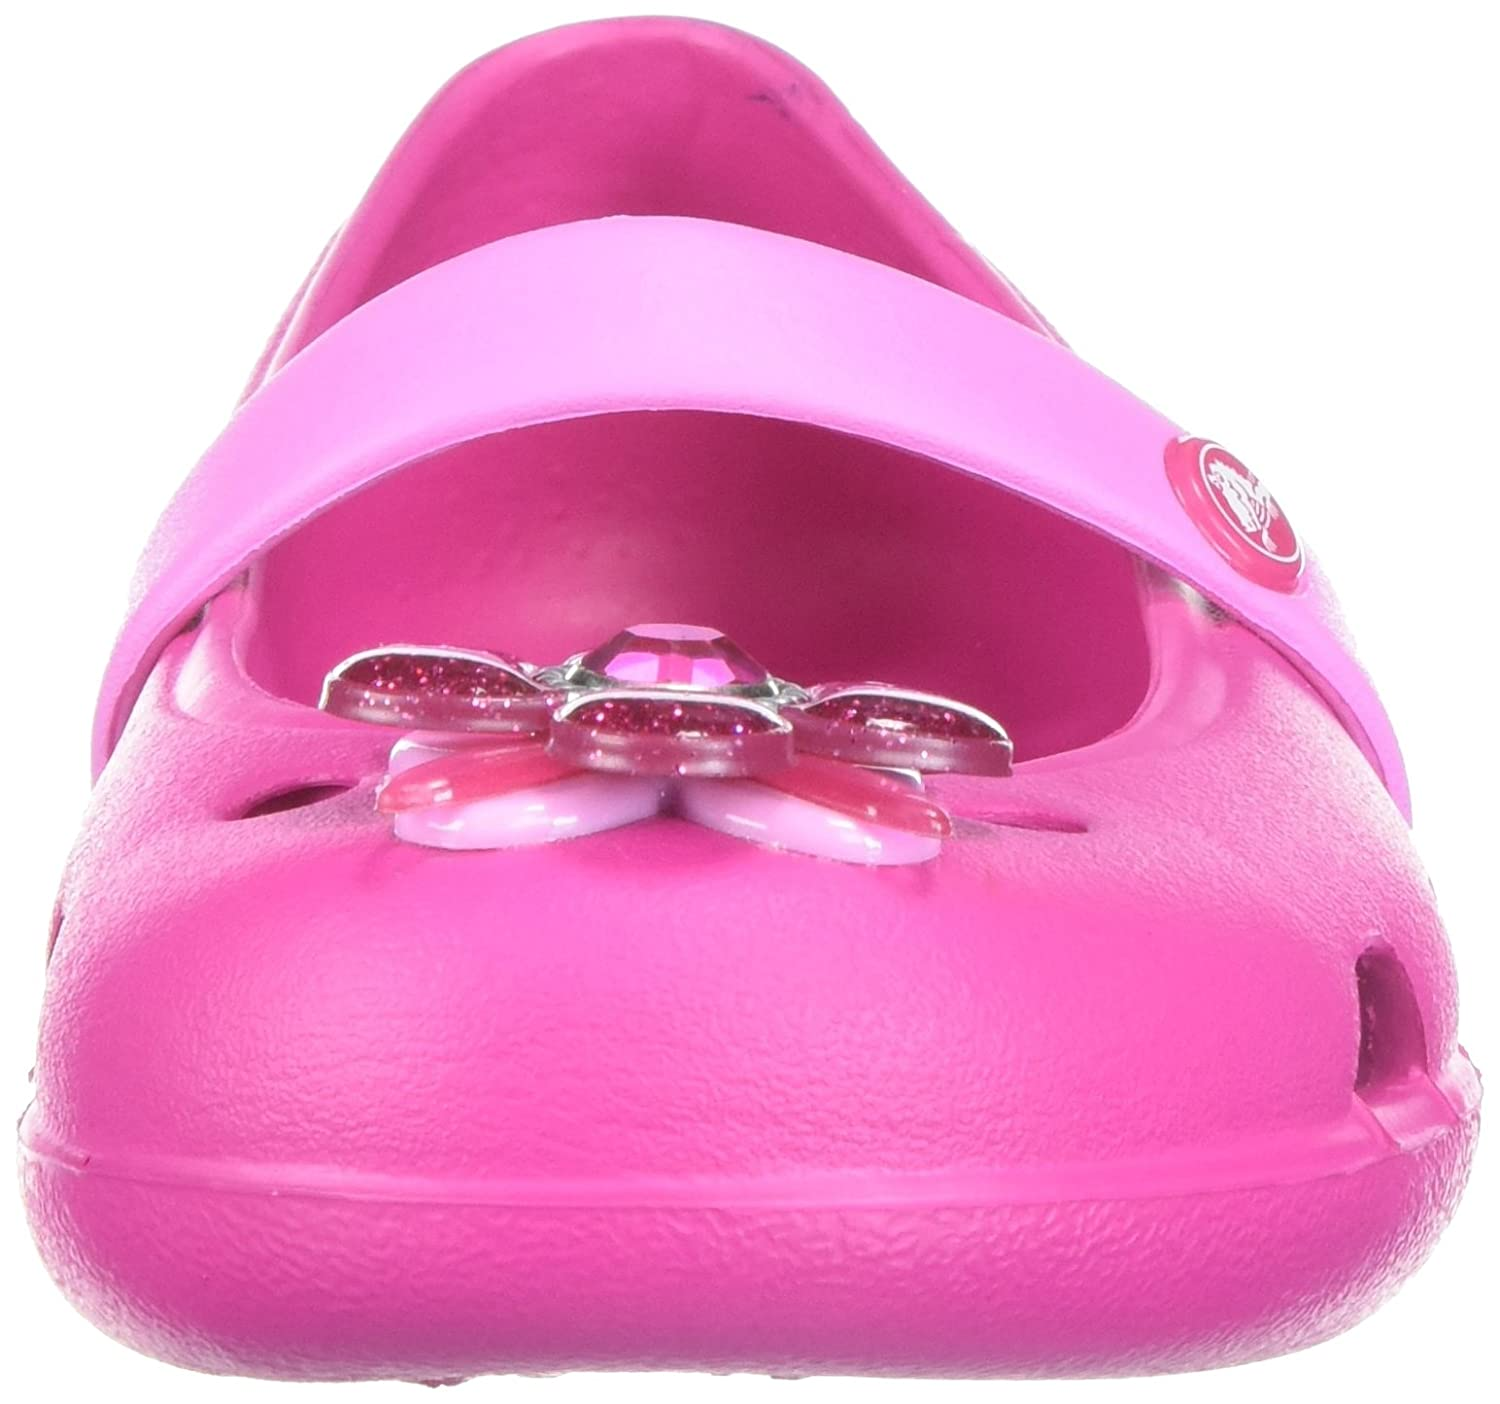 1aa04ef55f6891 crocs Girl s Keeley Springtime Flat PS Candy Pink Ballet C9 (205039)  Buy  Online at Low Prices in India - Amazon.in